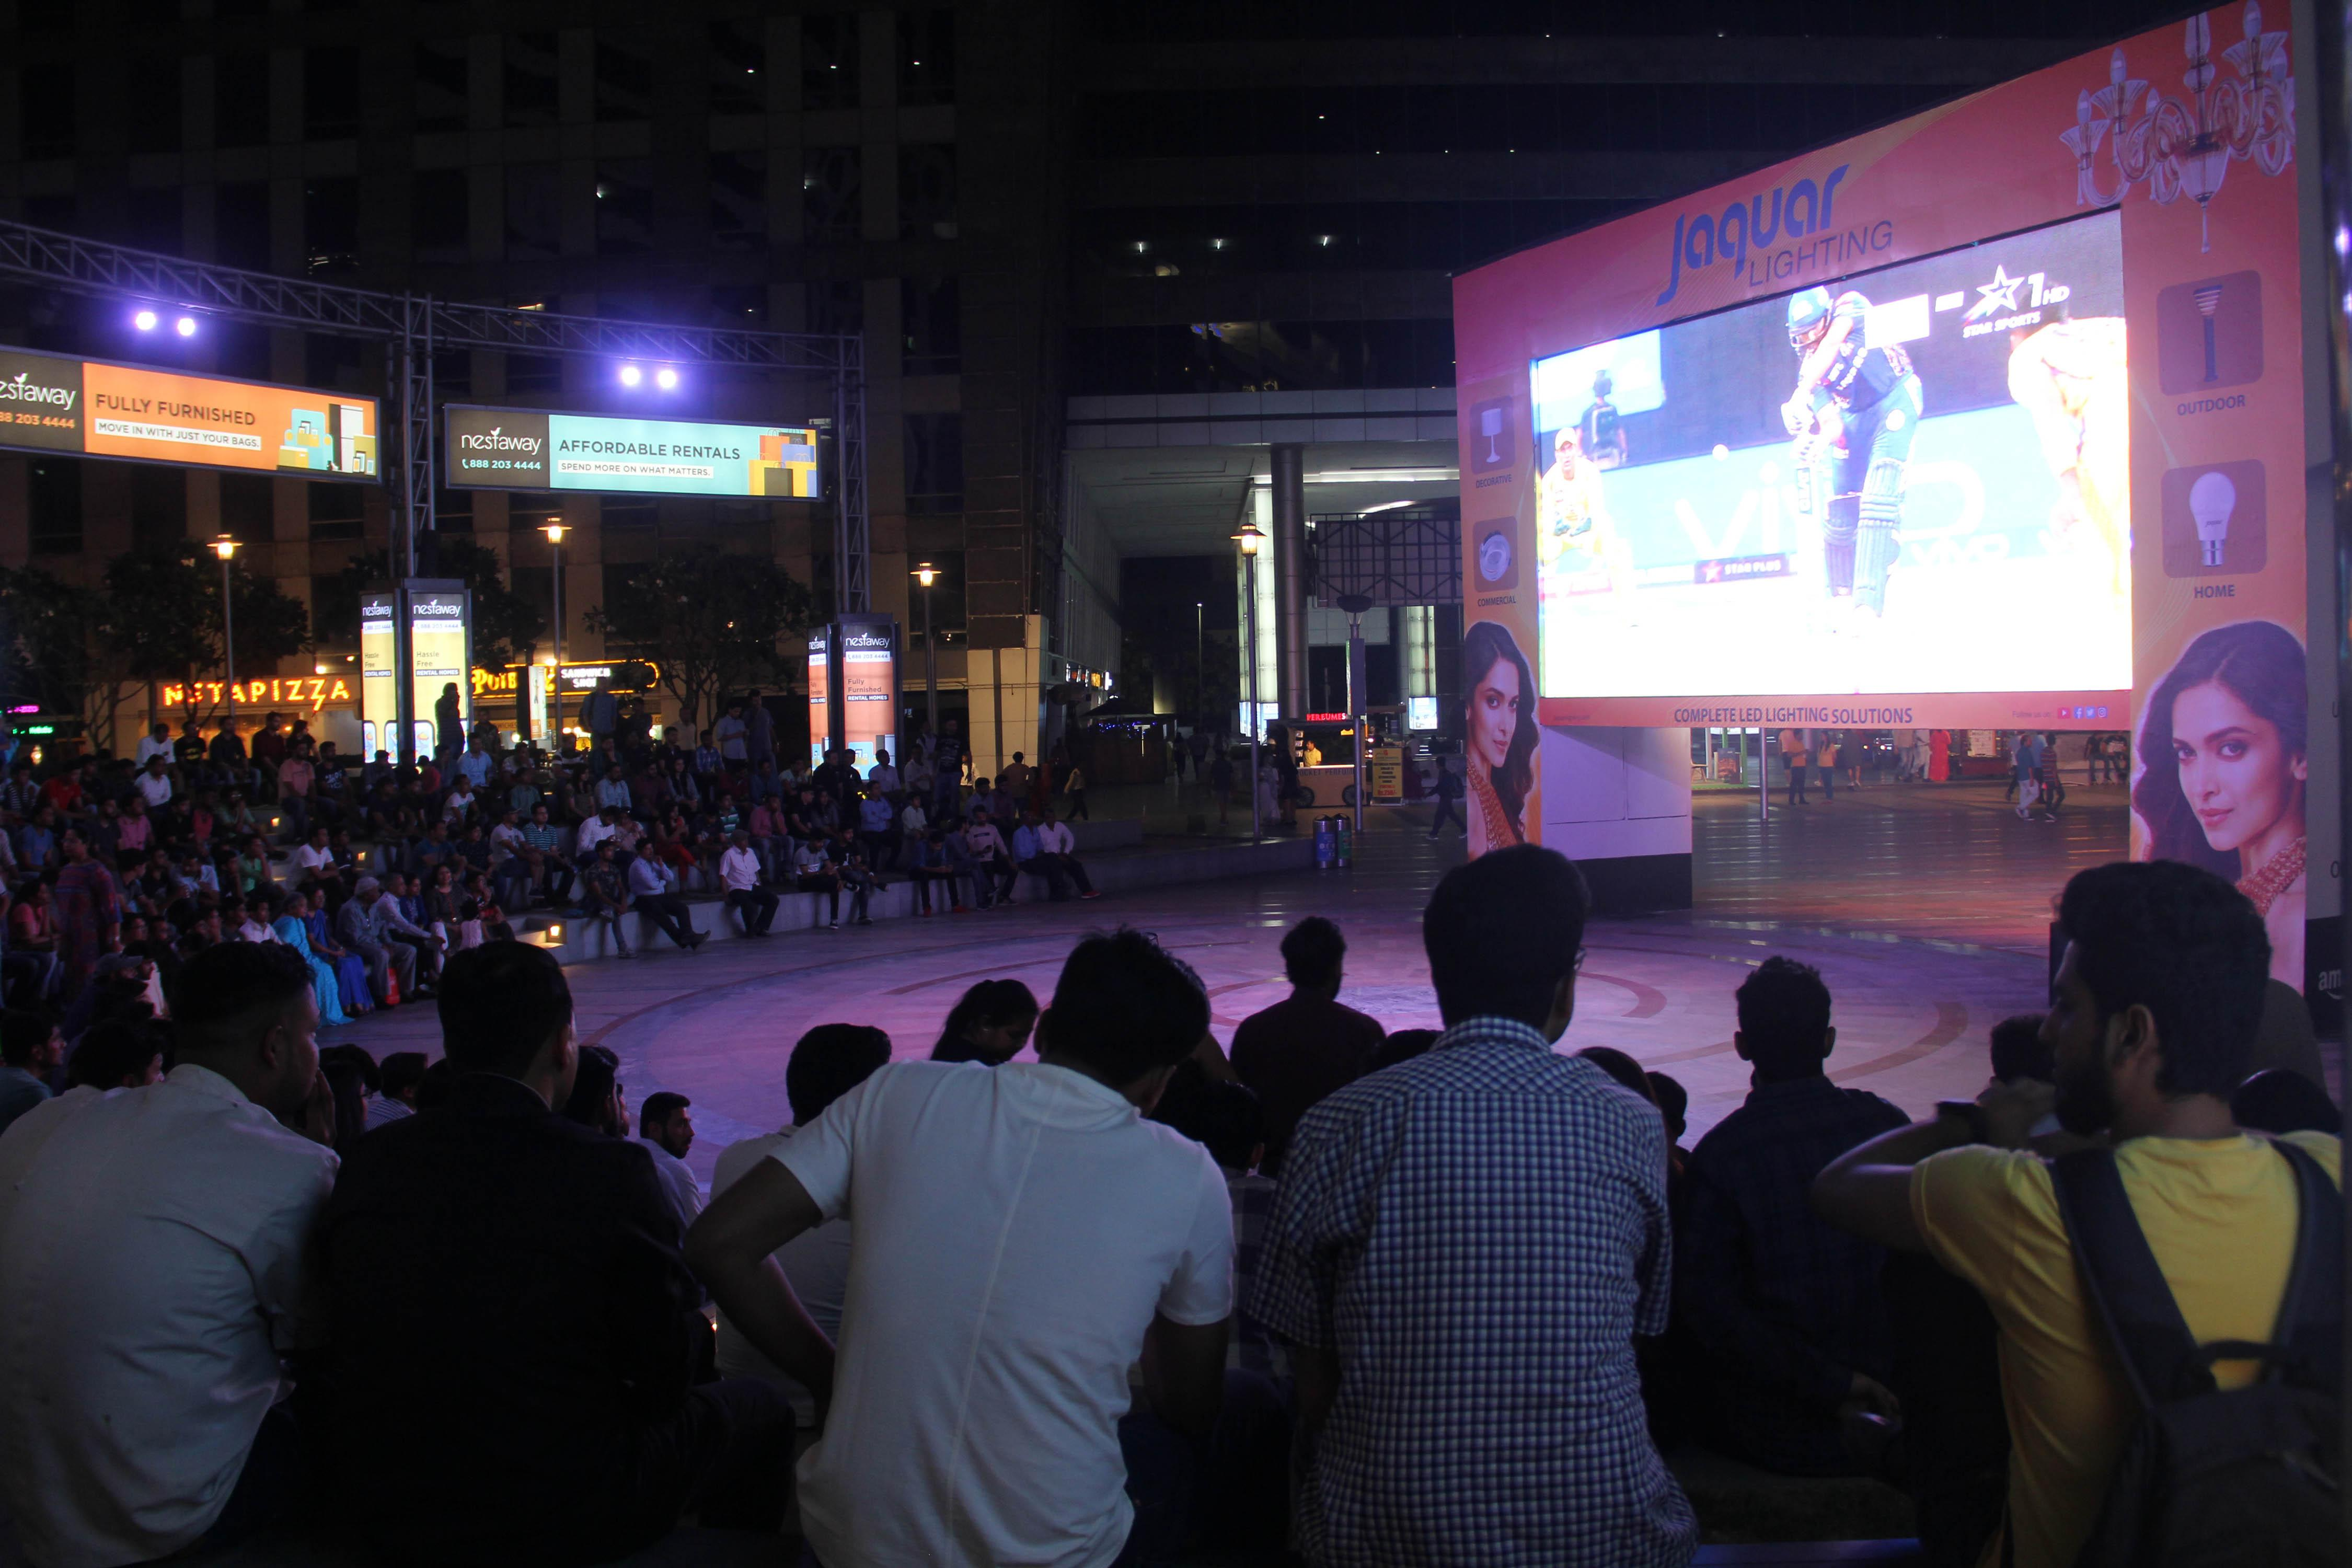 Fans in Delhi watch the action a big screen in the city